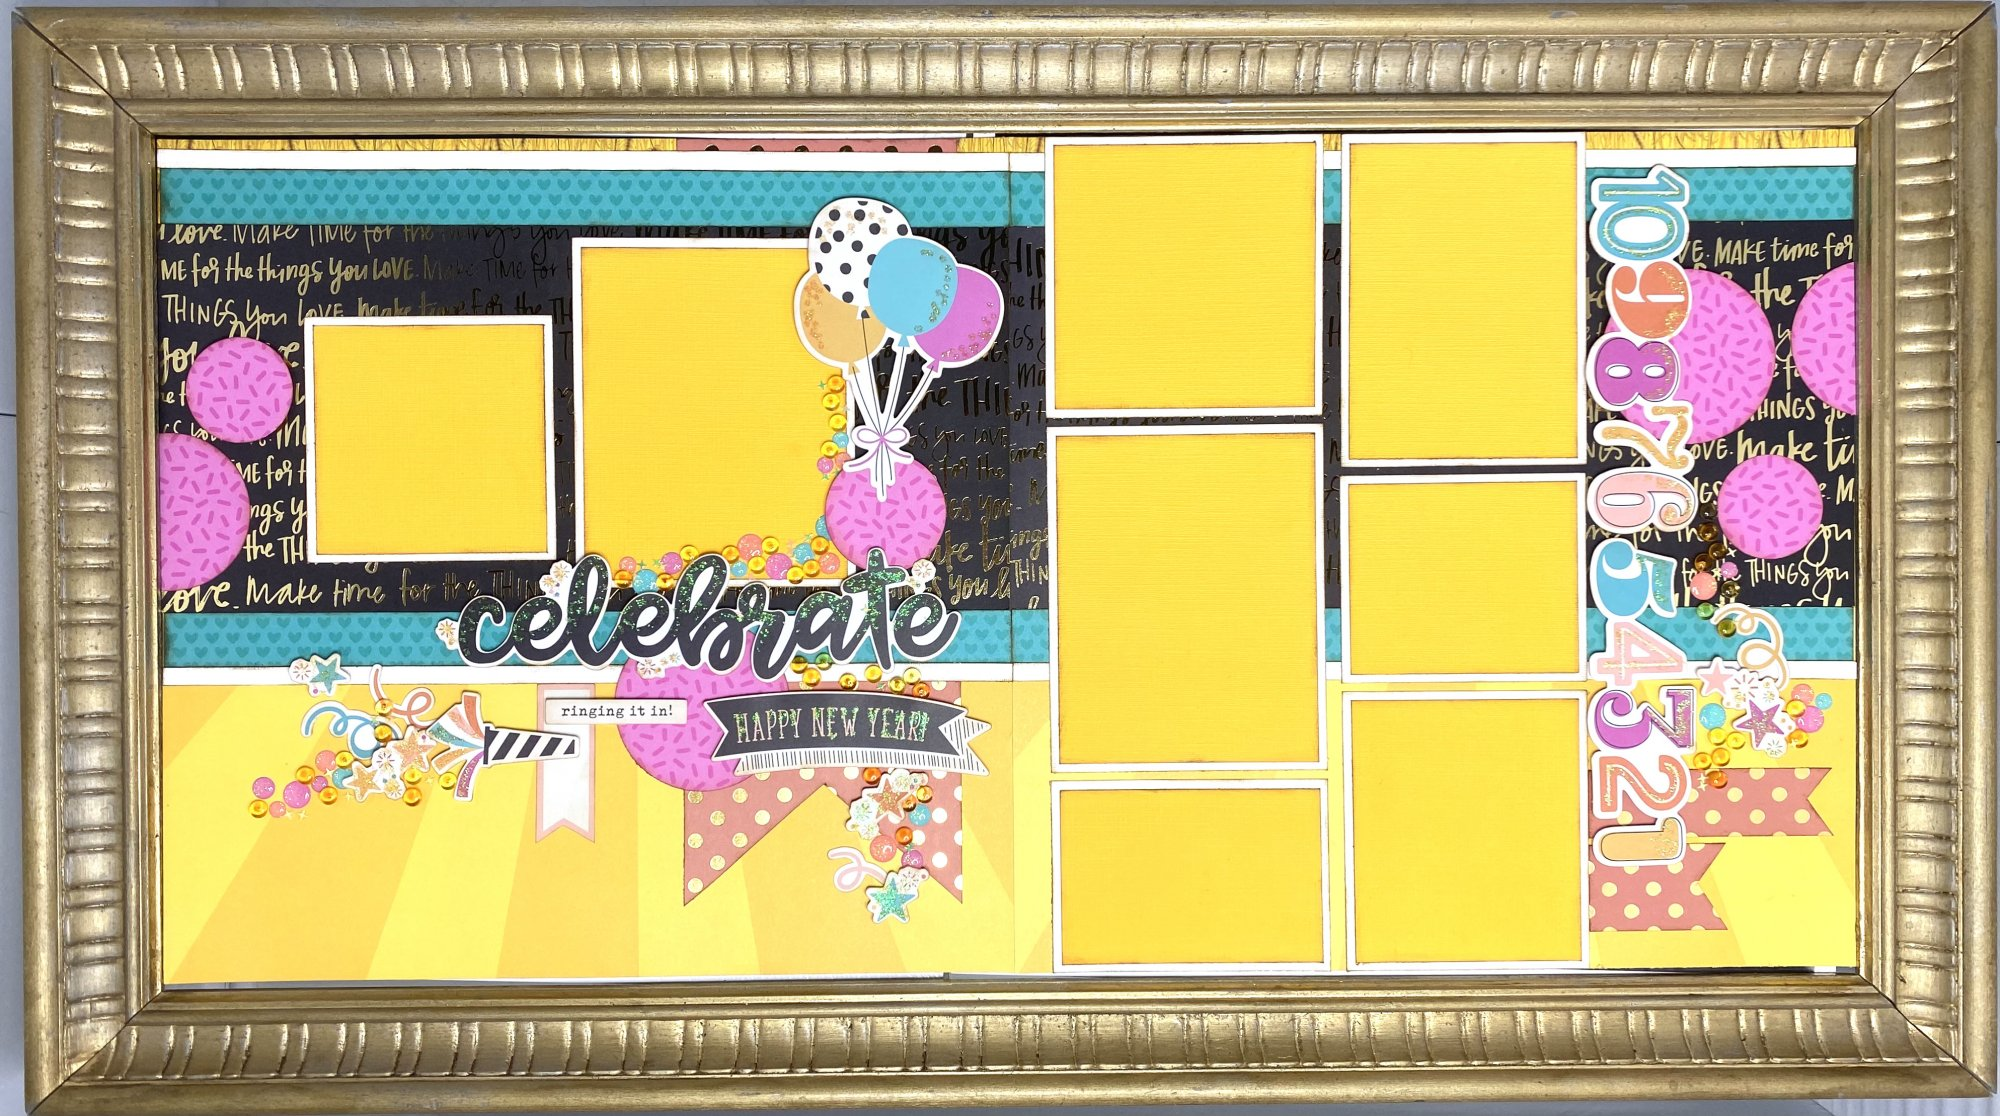 Celebrate - Shannon's Special Layout